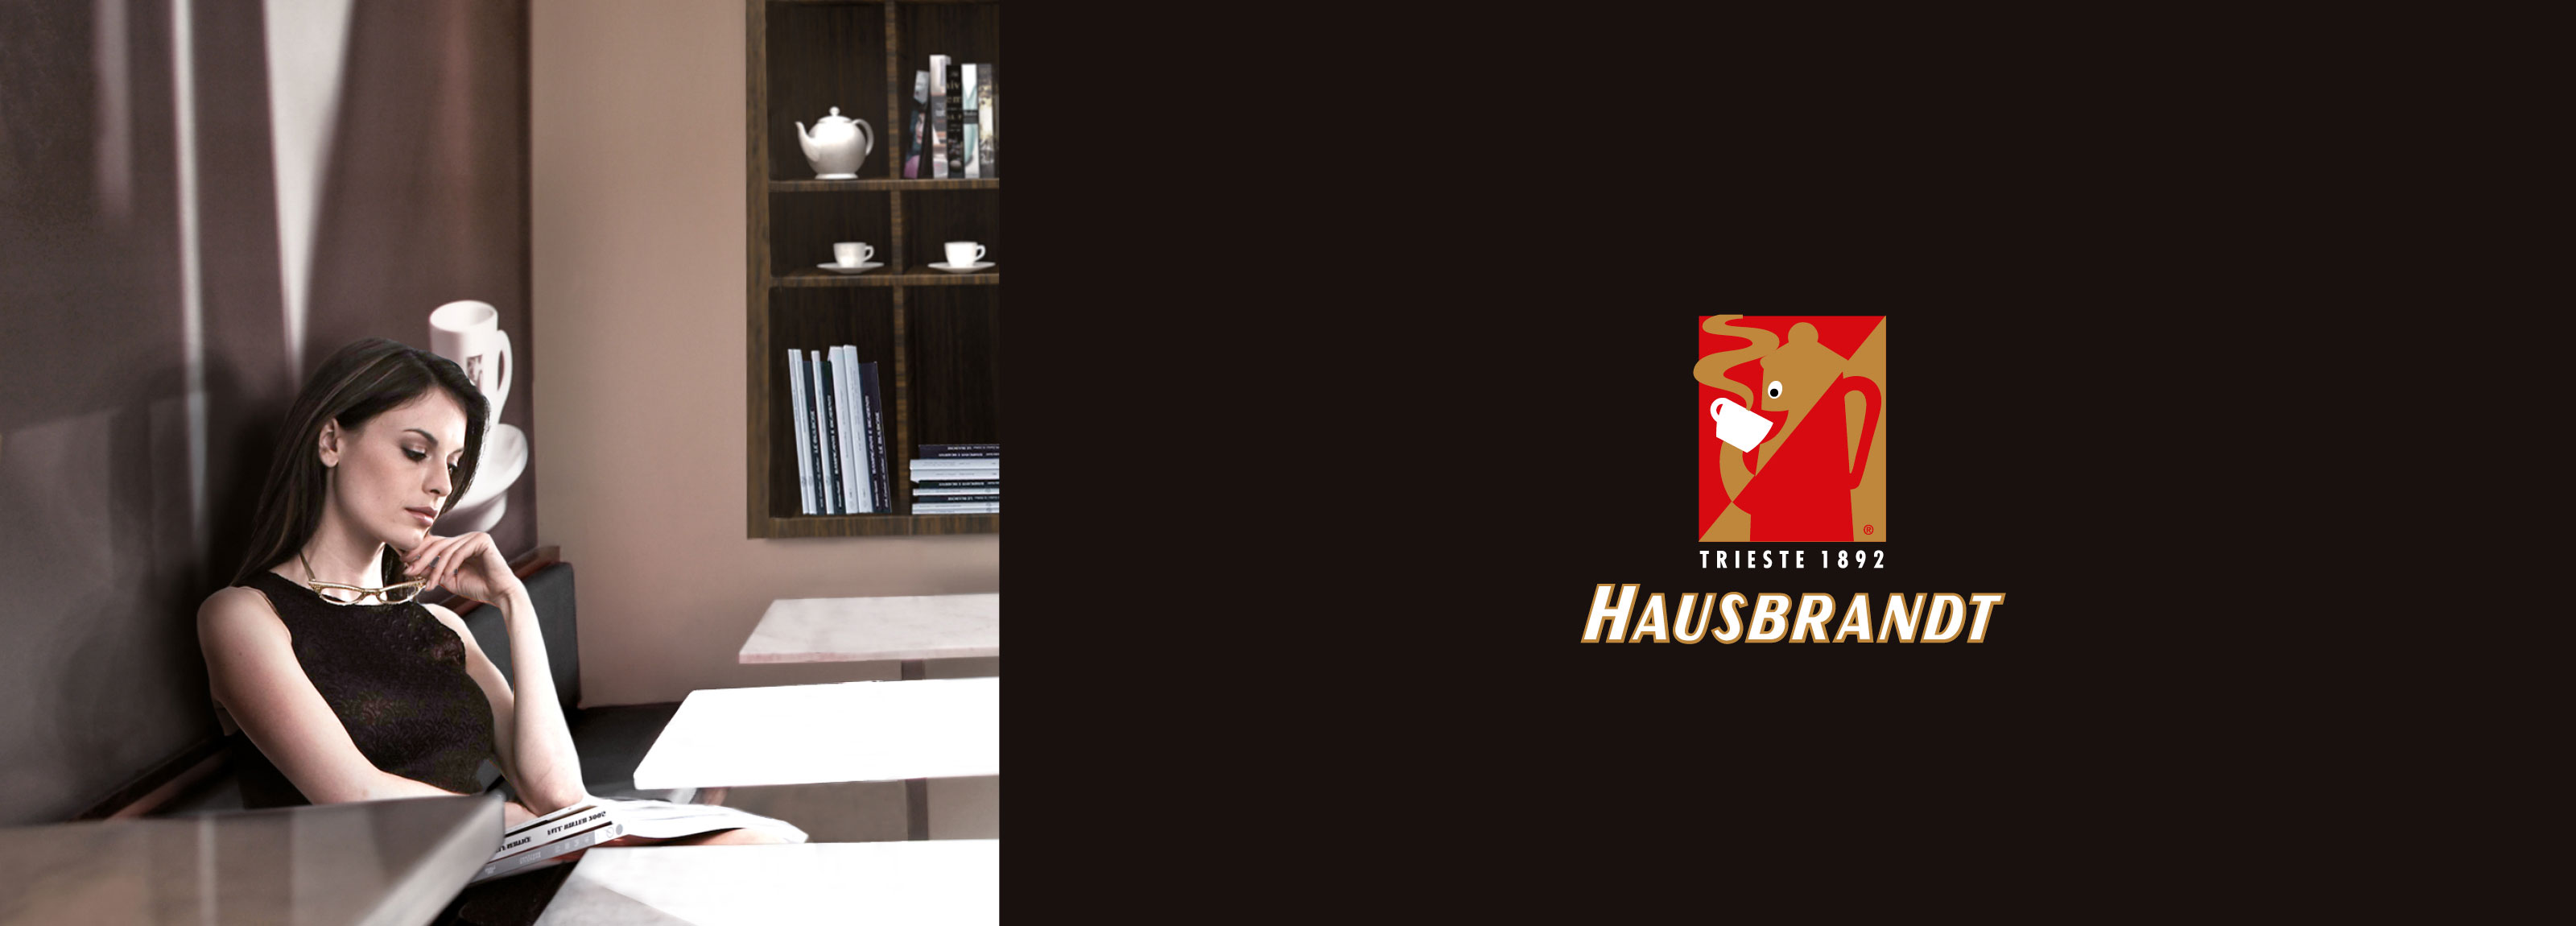 Hausbrandt - Hausbrandt<br>A special place for coffee